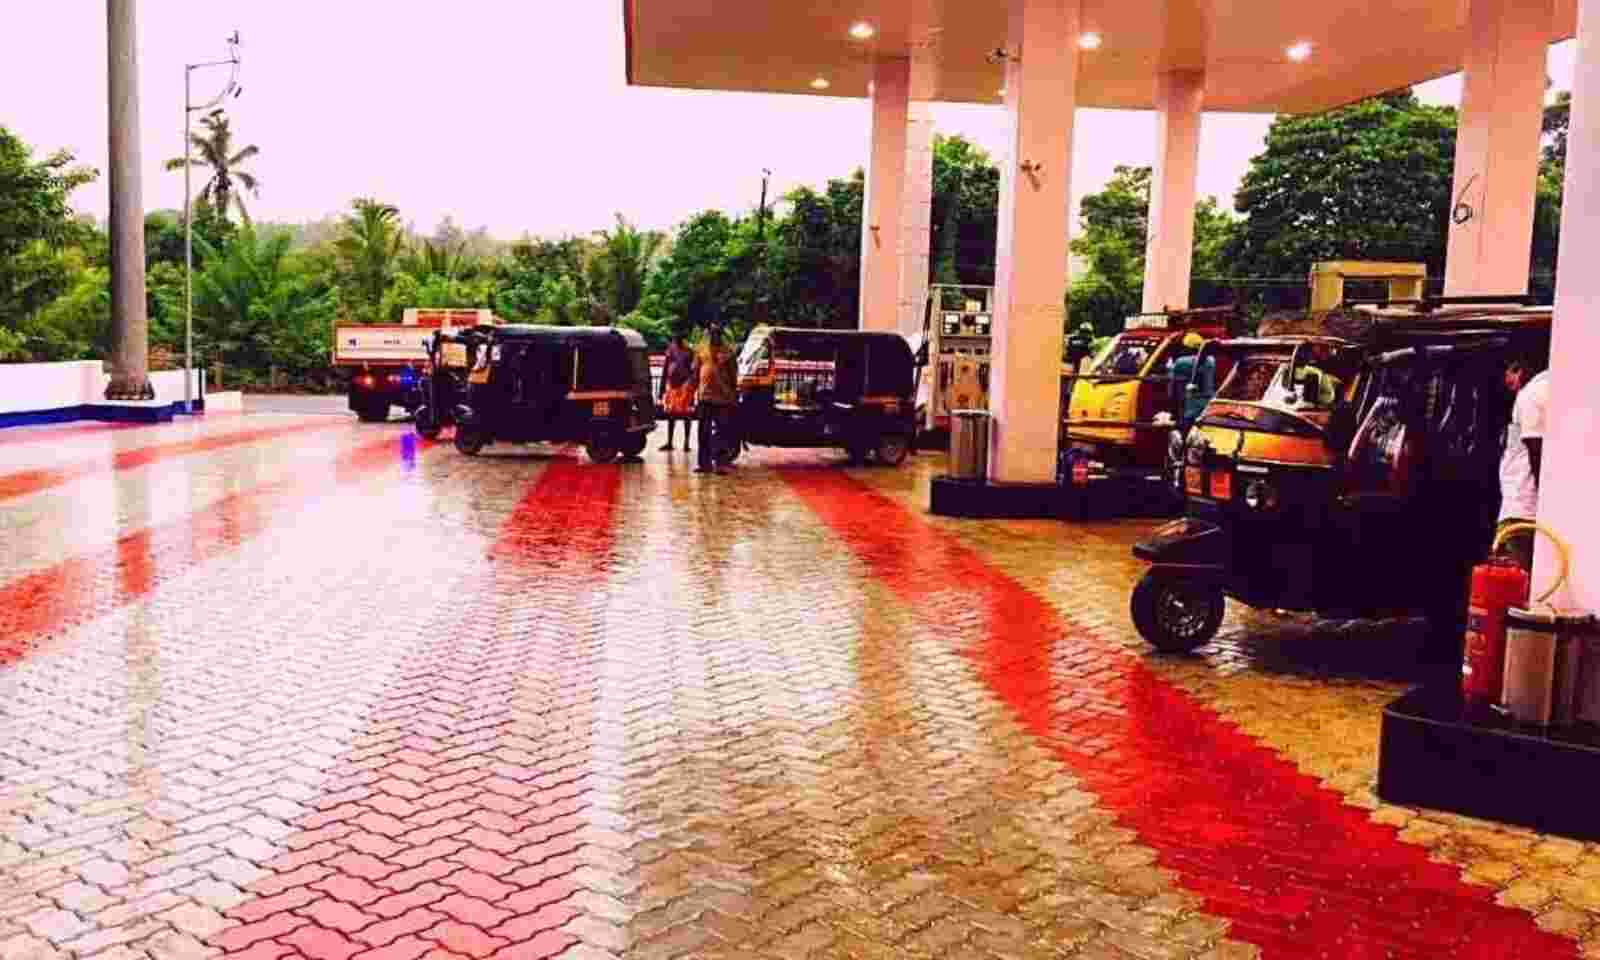 Kerala Petrol Pump Offers 3 Litres Of Fuel For Free, Despite Rising Prices